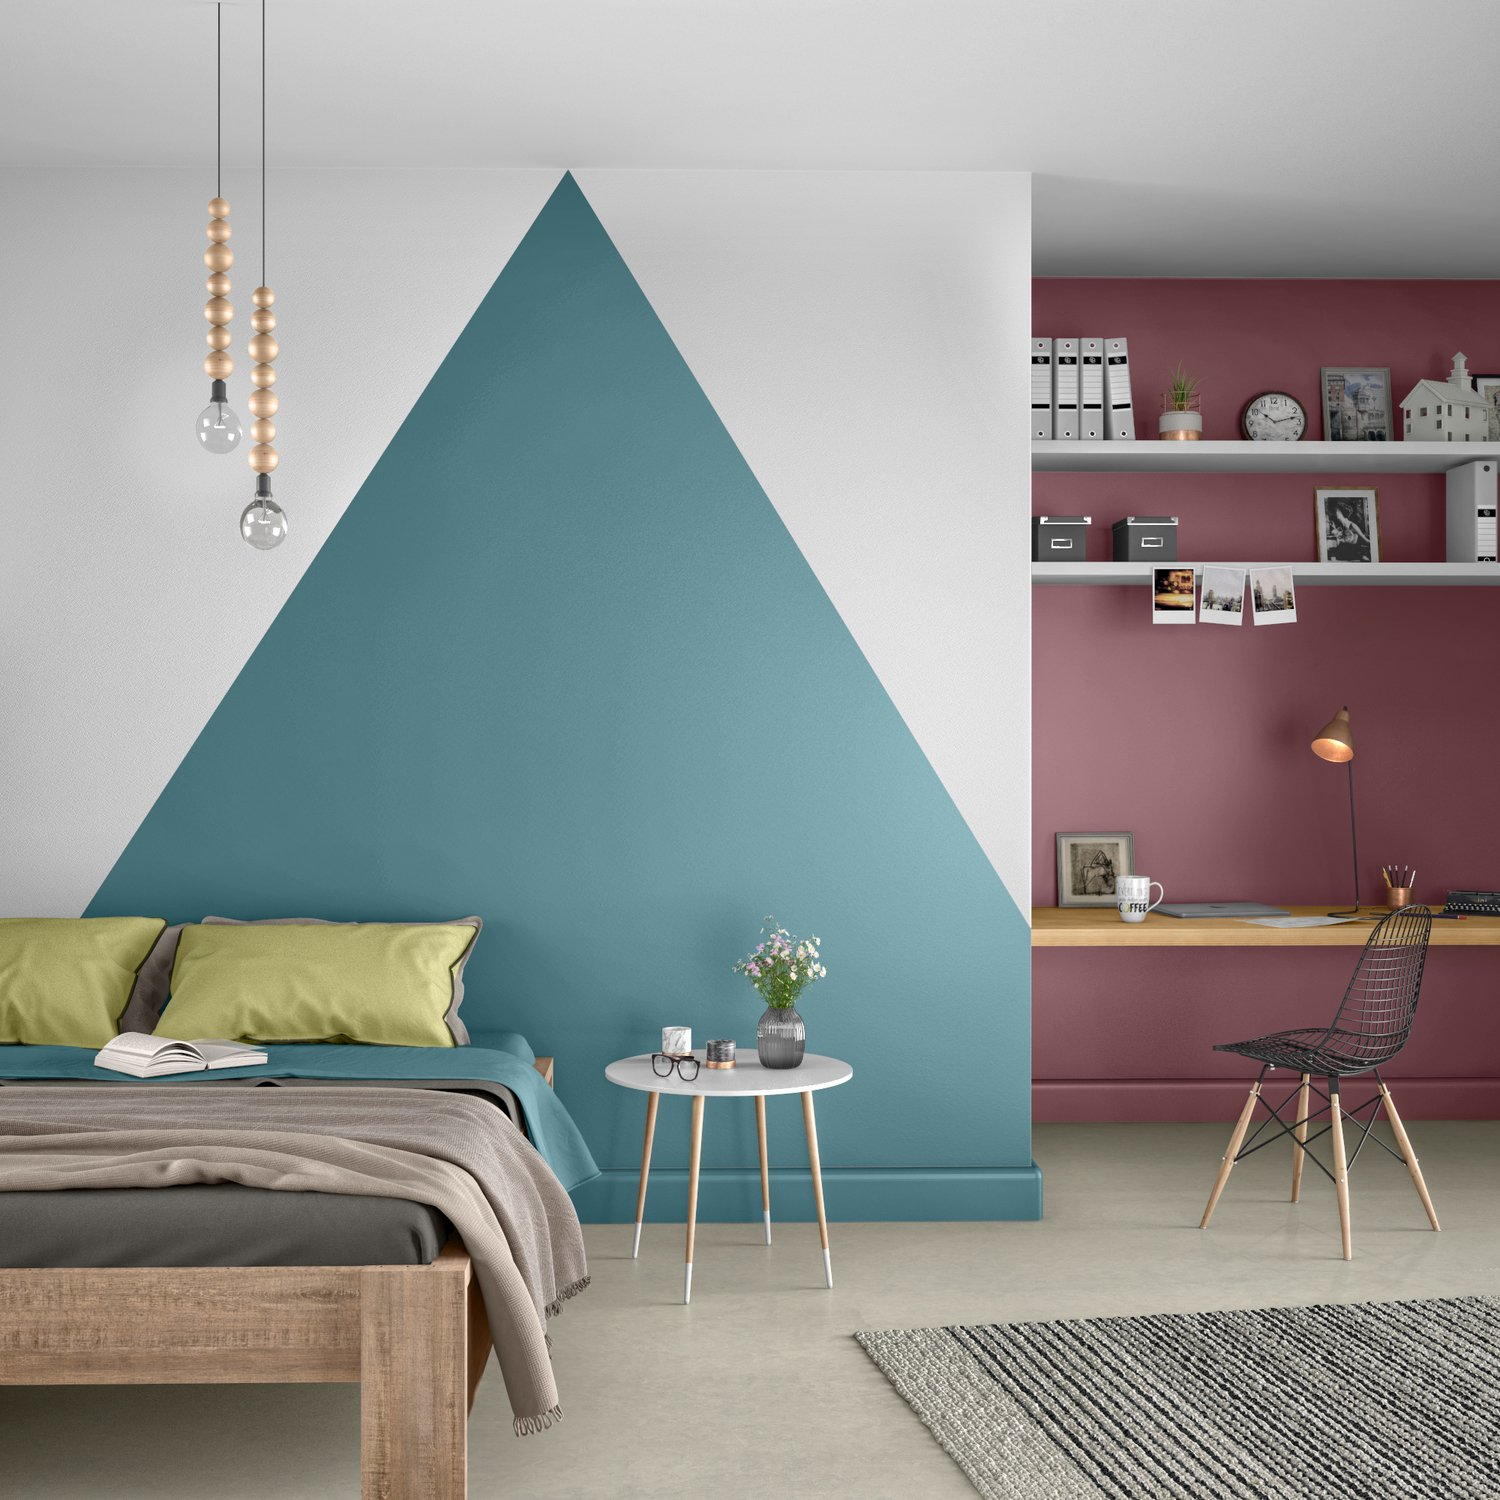 le mur reprend des couleurs dans la chambre leroy merlin. Black Bedroom Furniture Sets. Home Design Ideas